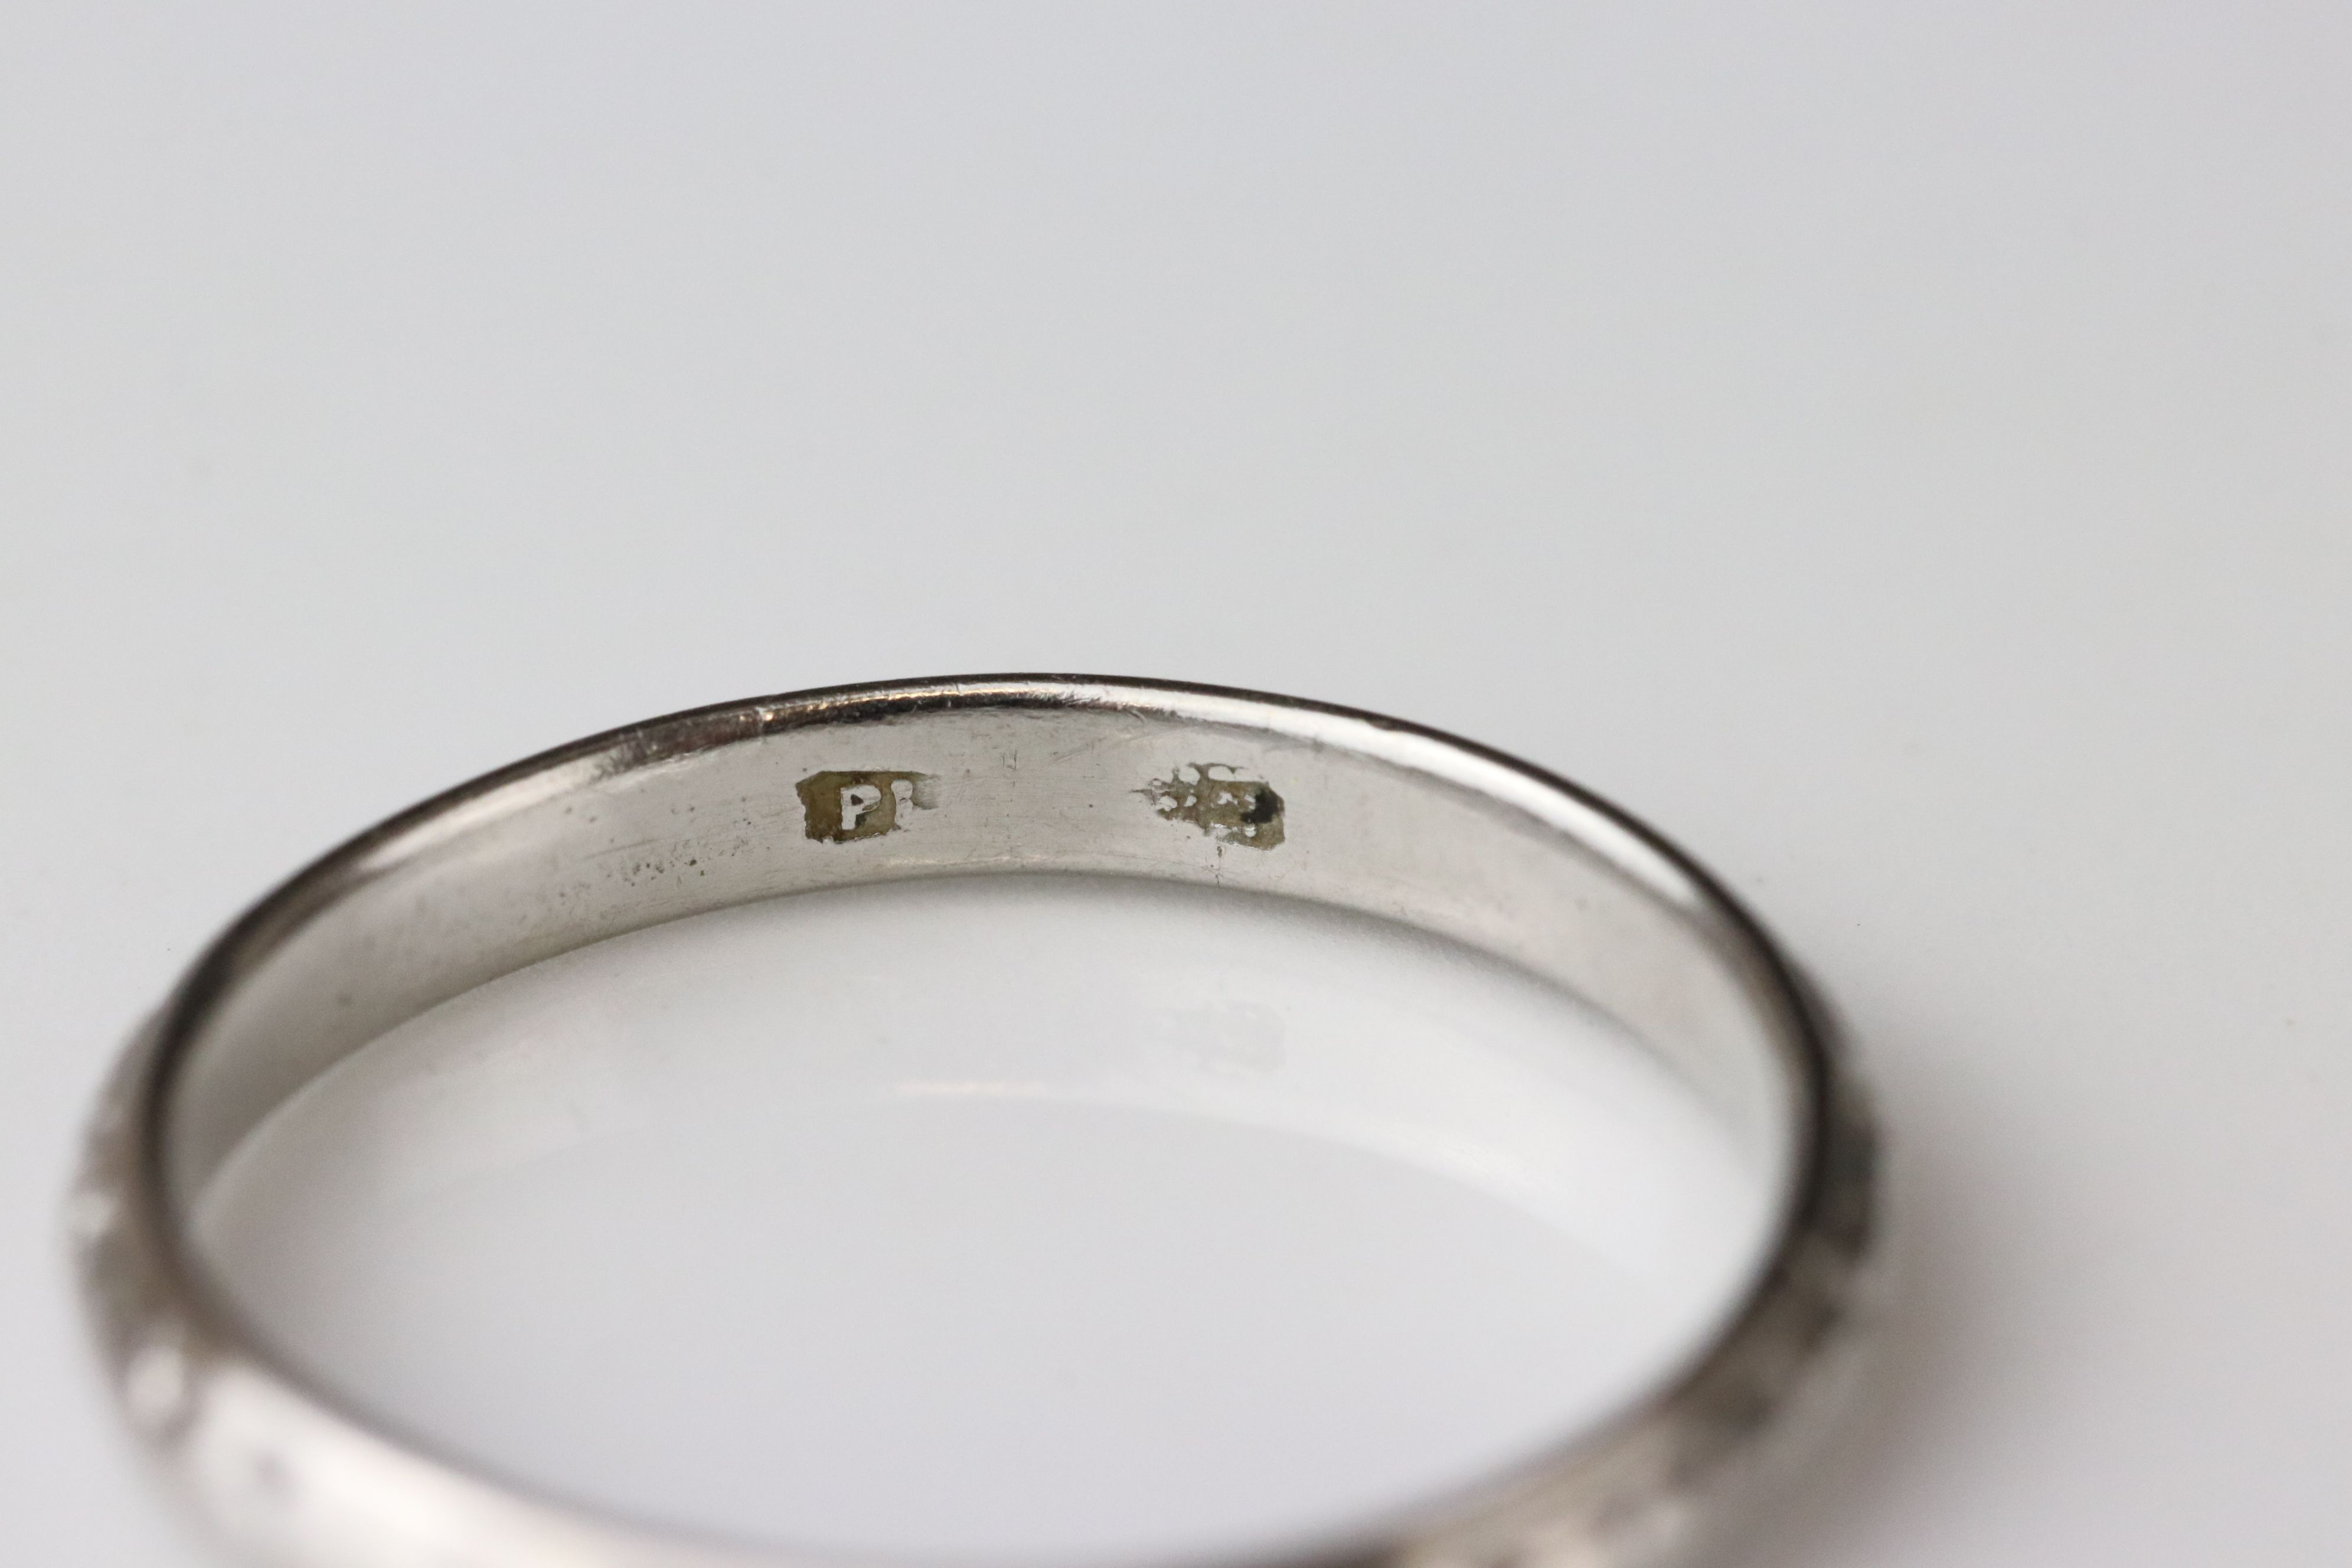 Platinum wedding band, worn foliate design, width approx 2.5mm, ring size M - Image 3 of 4